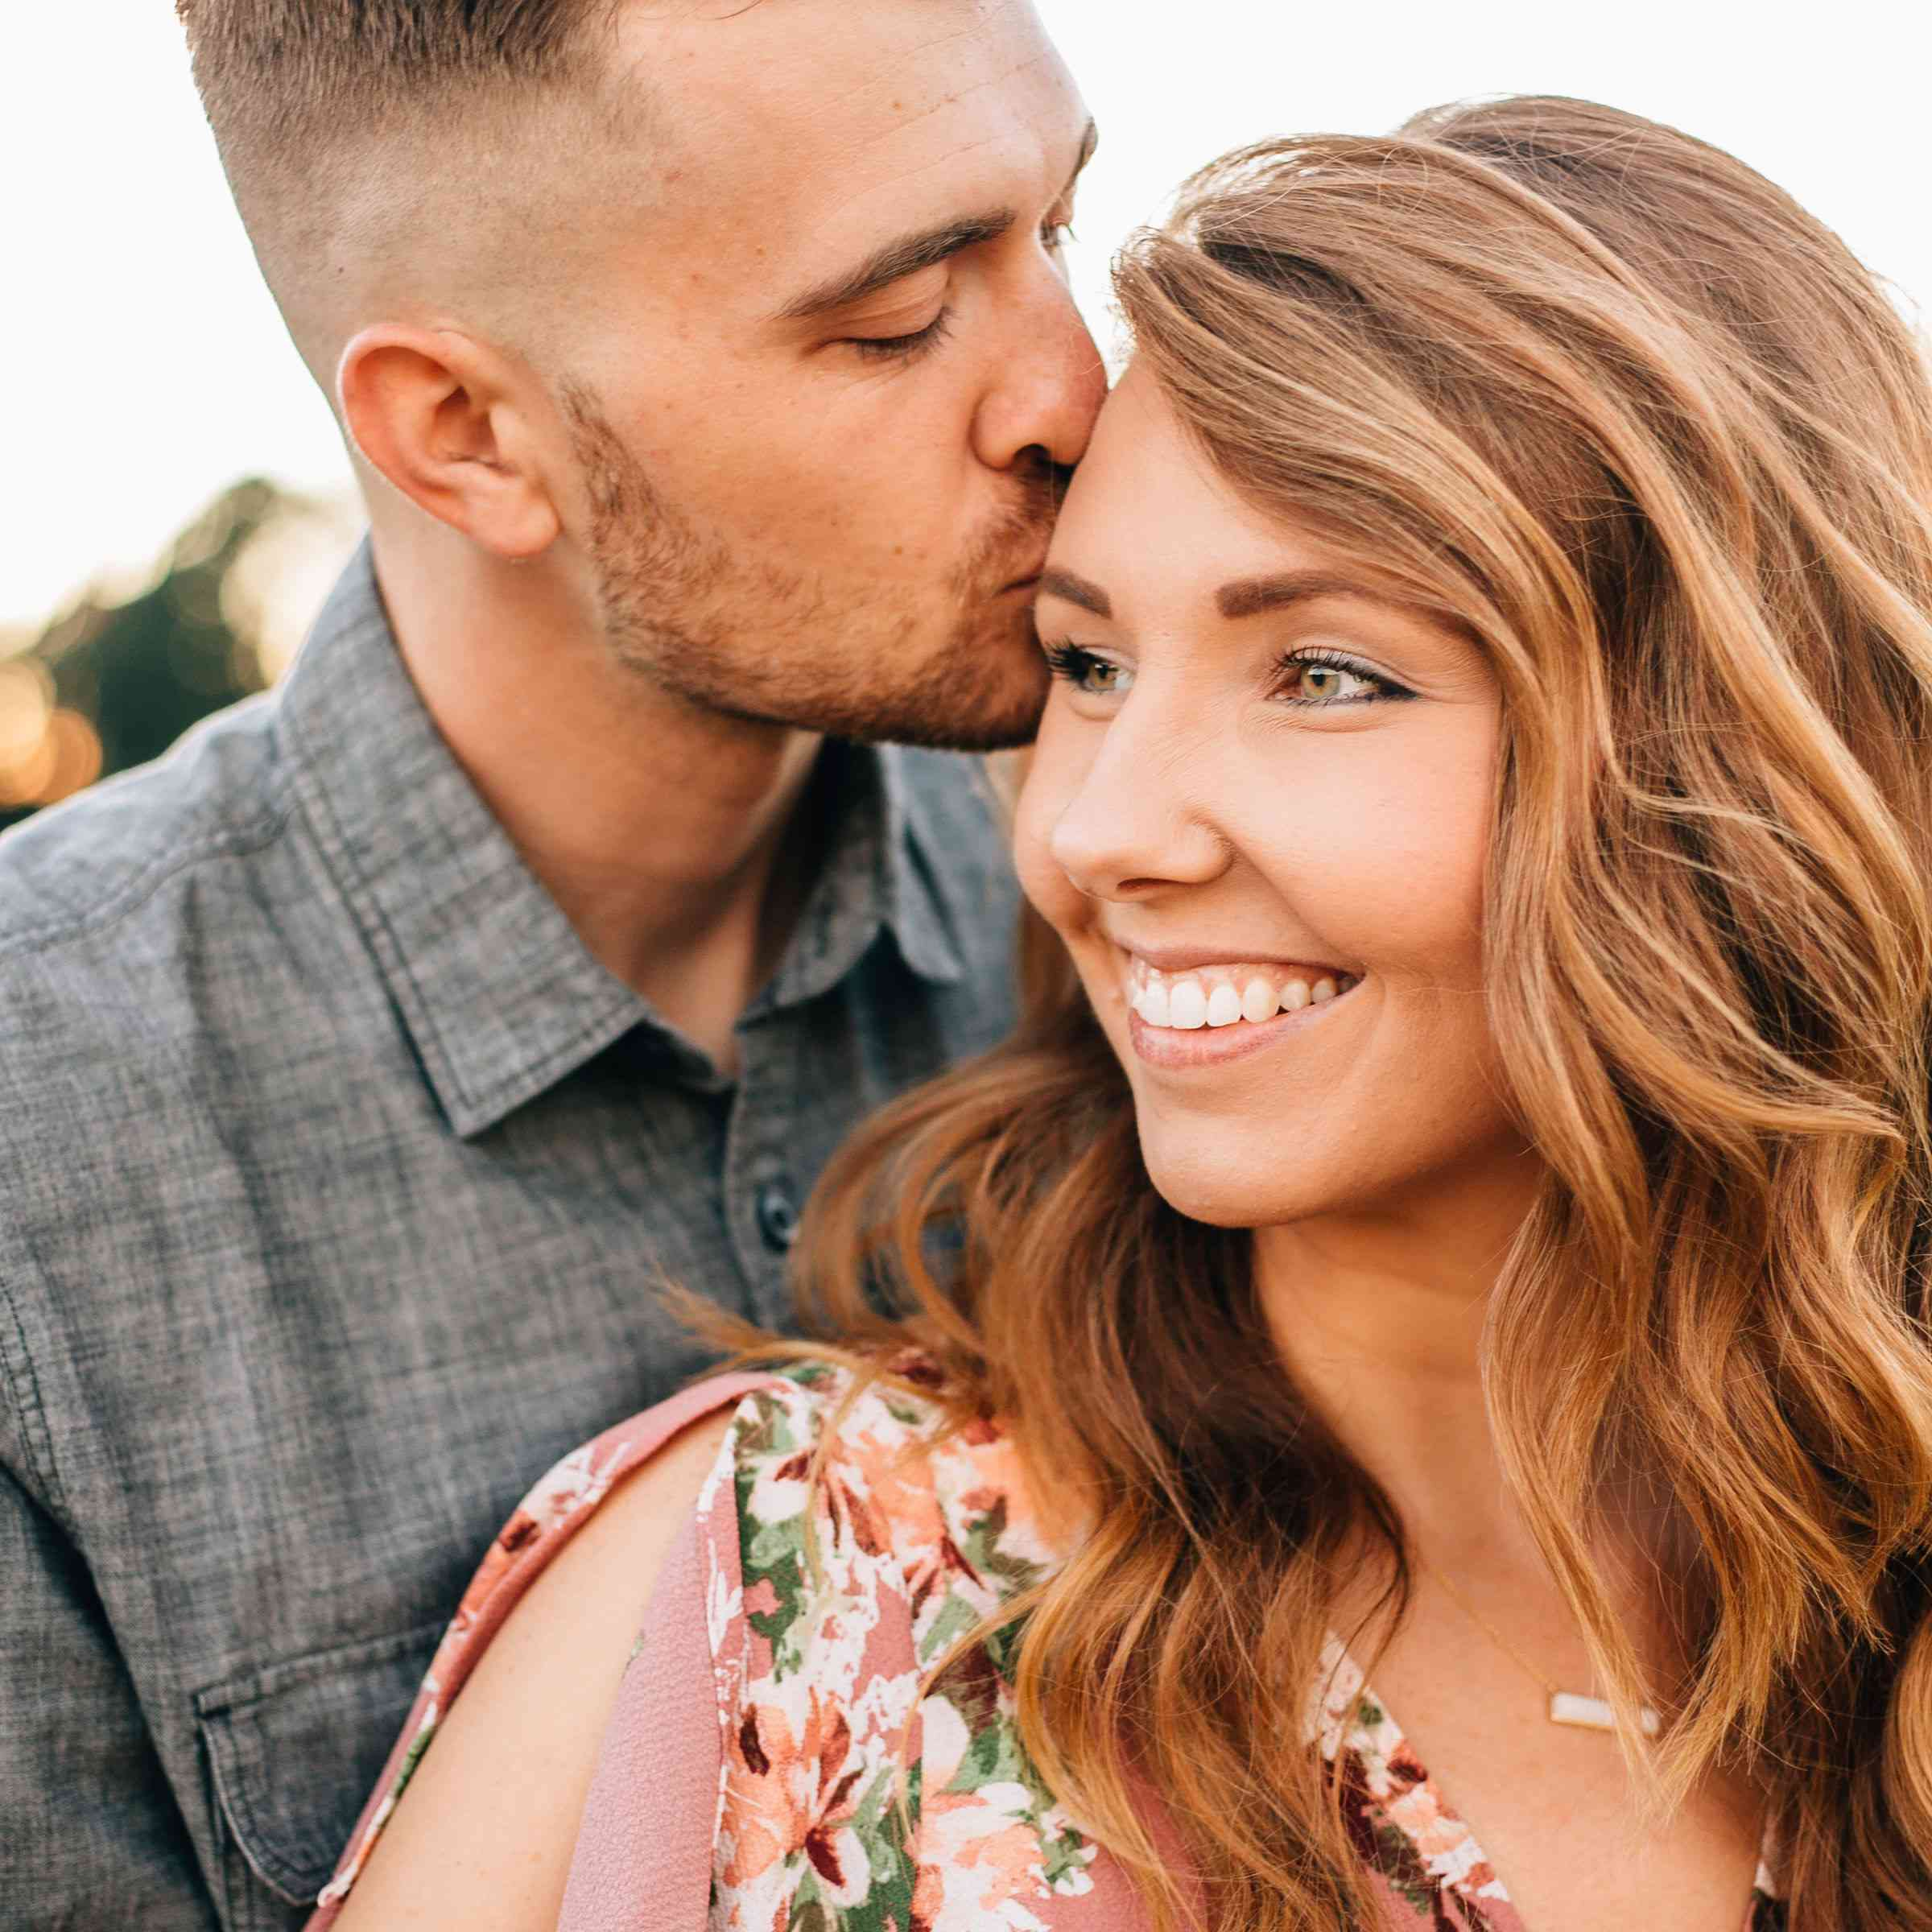 10 Natural Makeup Looks For Your Engagement Photos